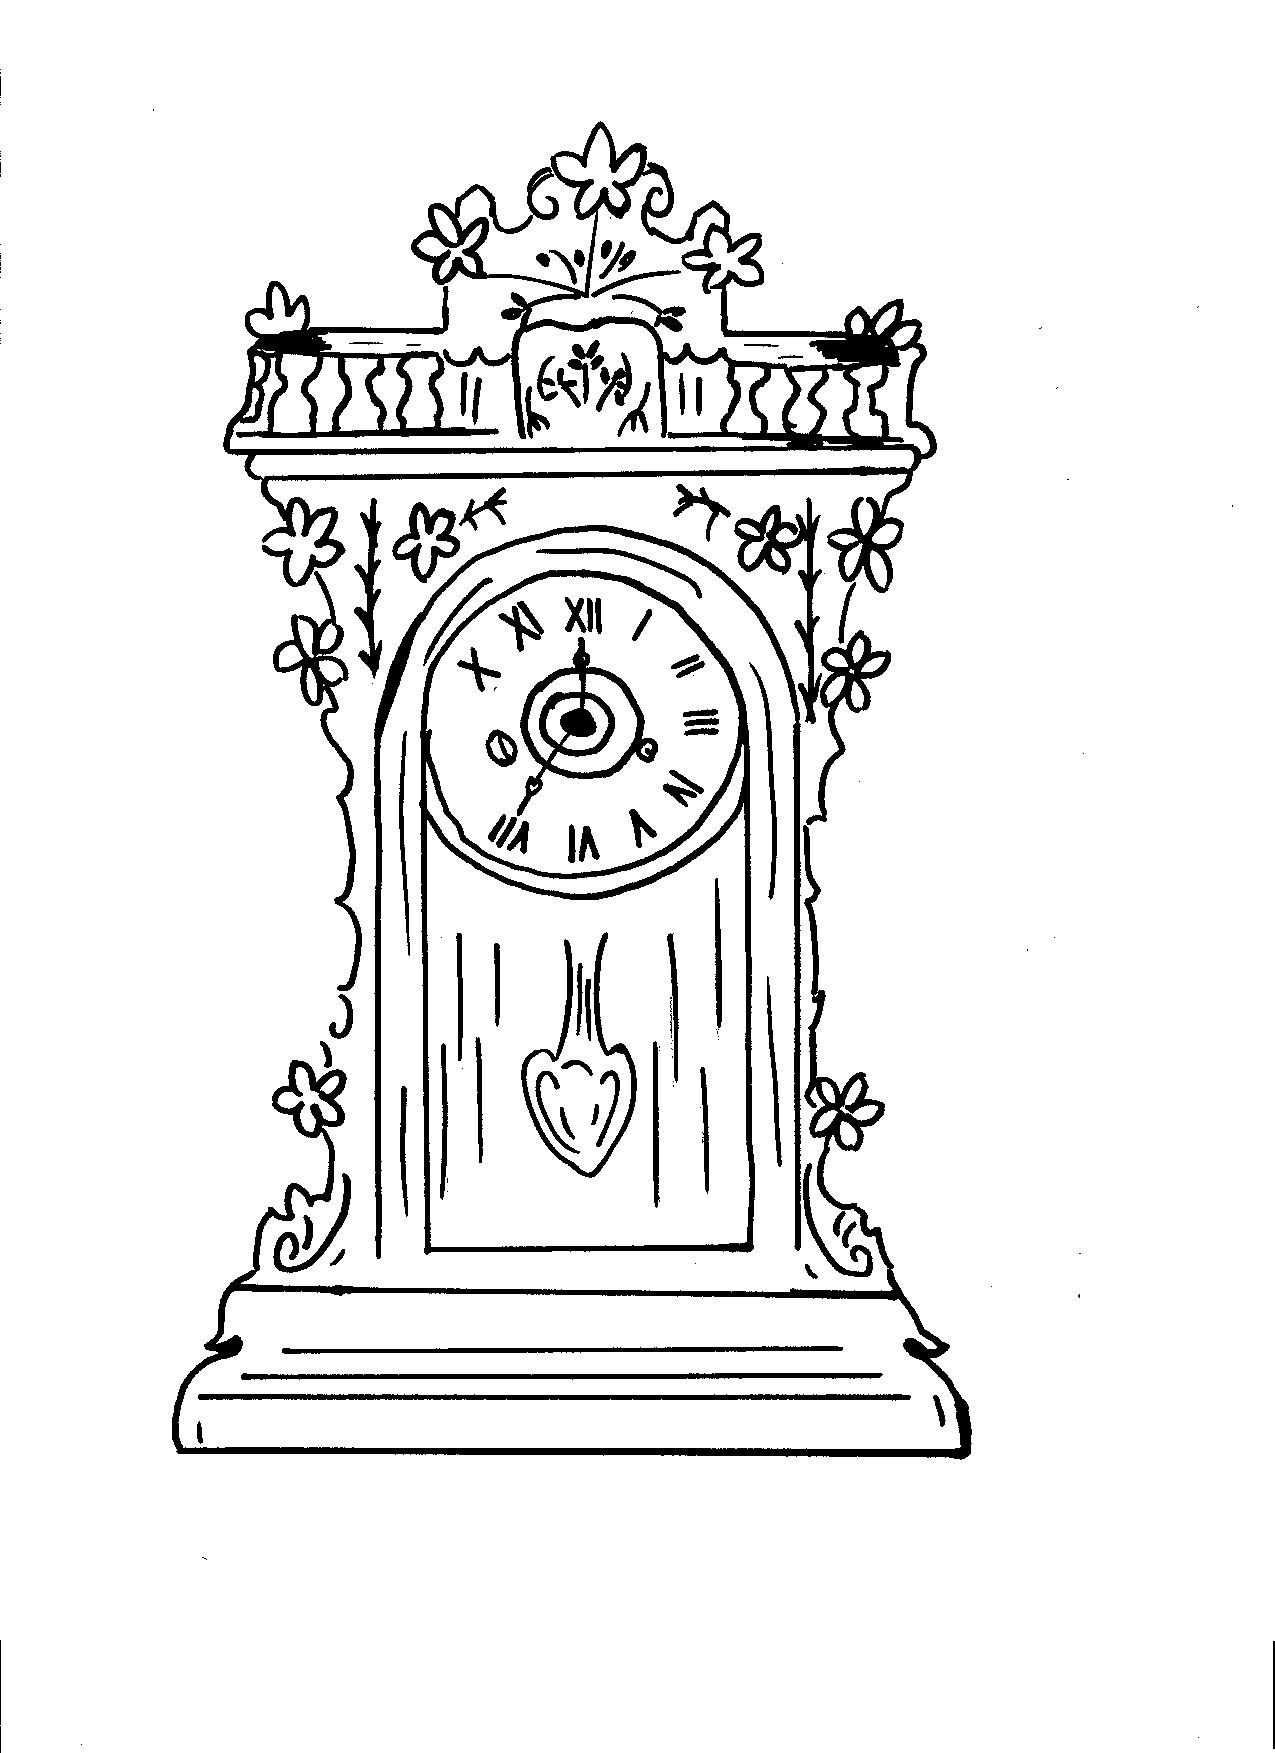 coloring page | Time | Pinterest